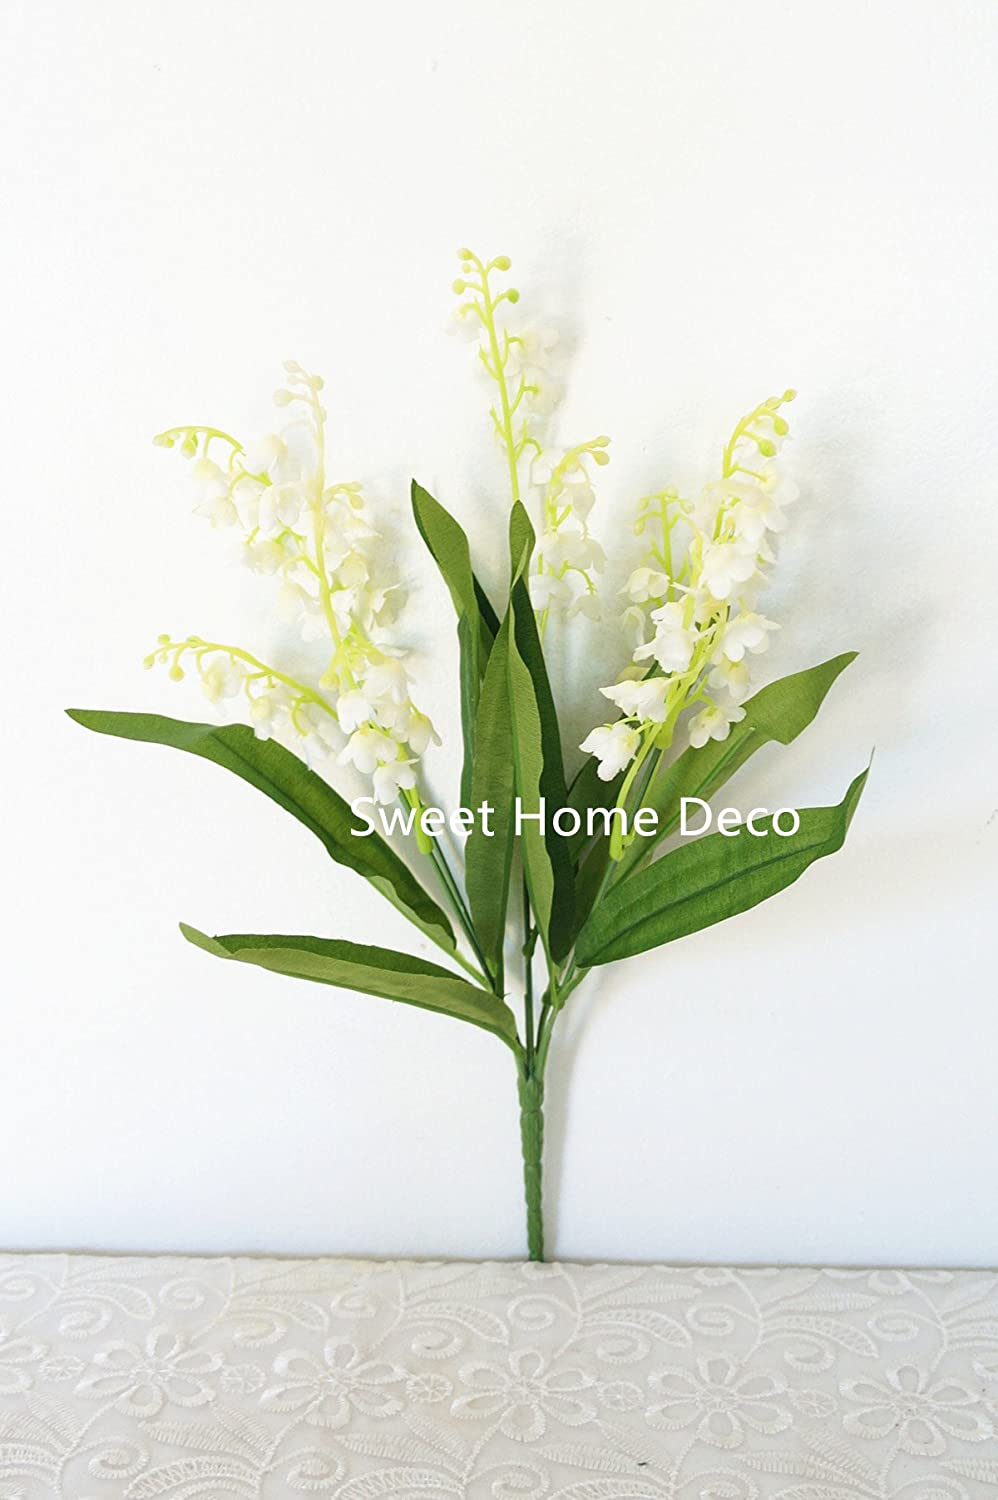 Amazon sweet home deco 12 silk lily of the valley artificial amazon sweet home deco 12 silk lily of the valley artificial flower bush 5 stems w flower heads 3 white home kitchen izmirmasajfo